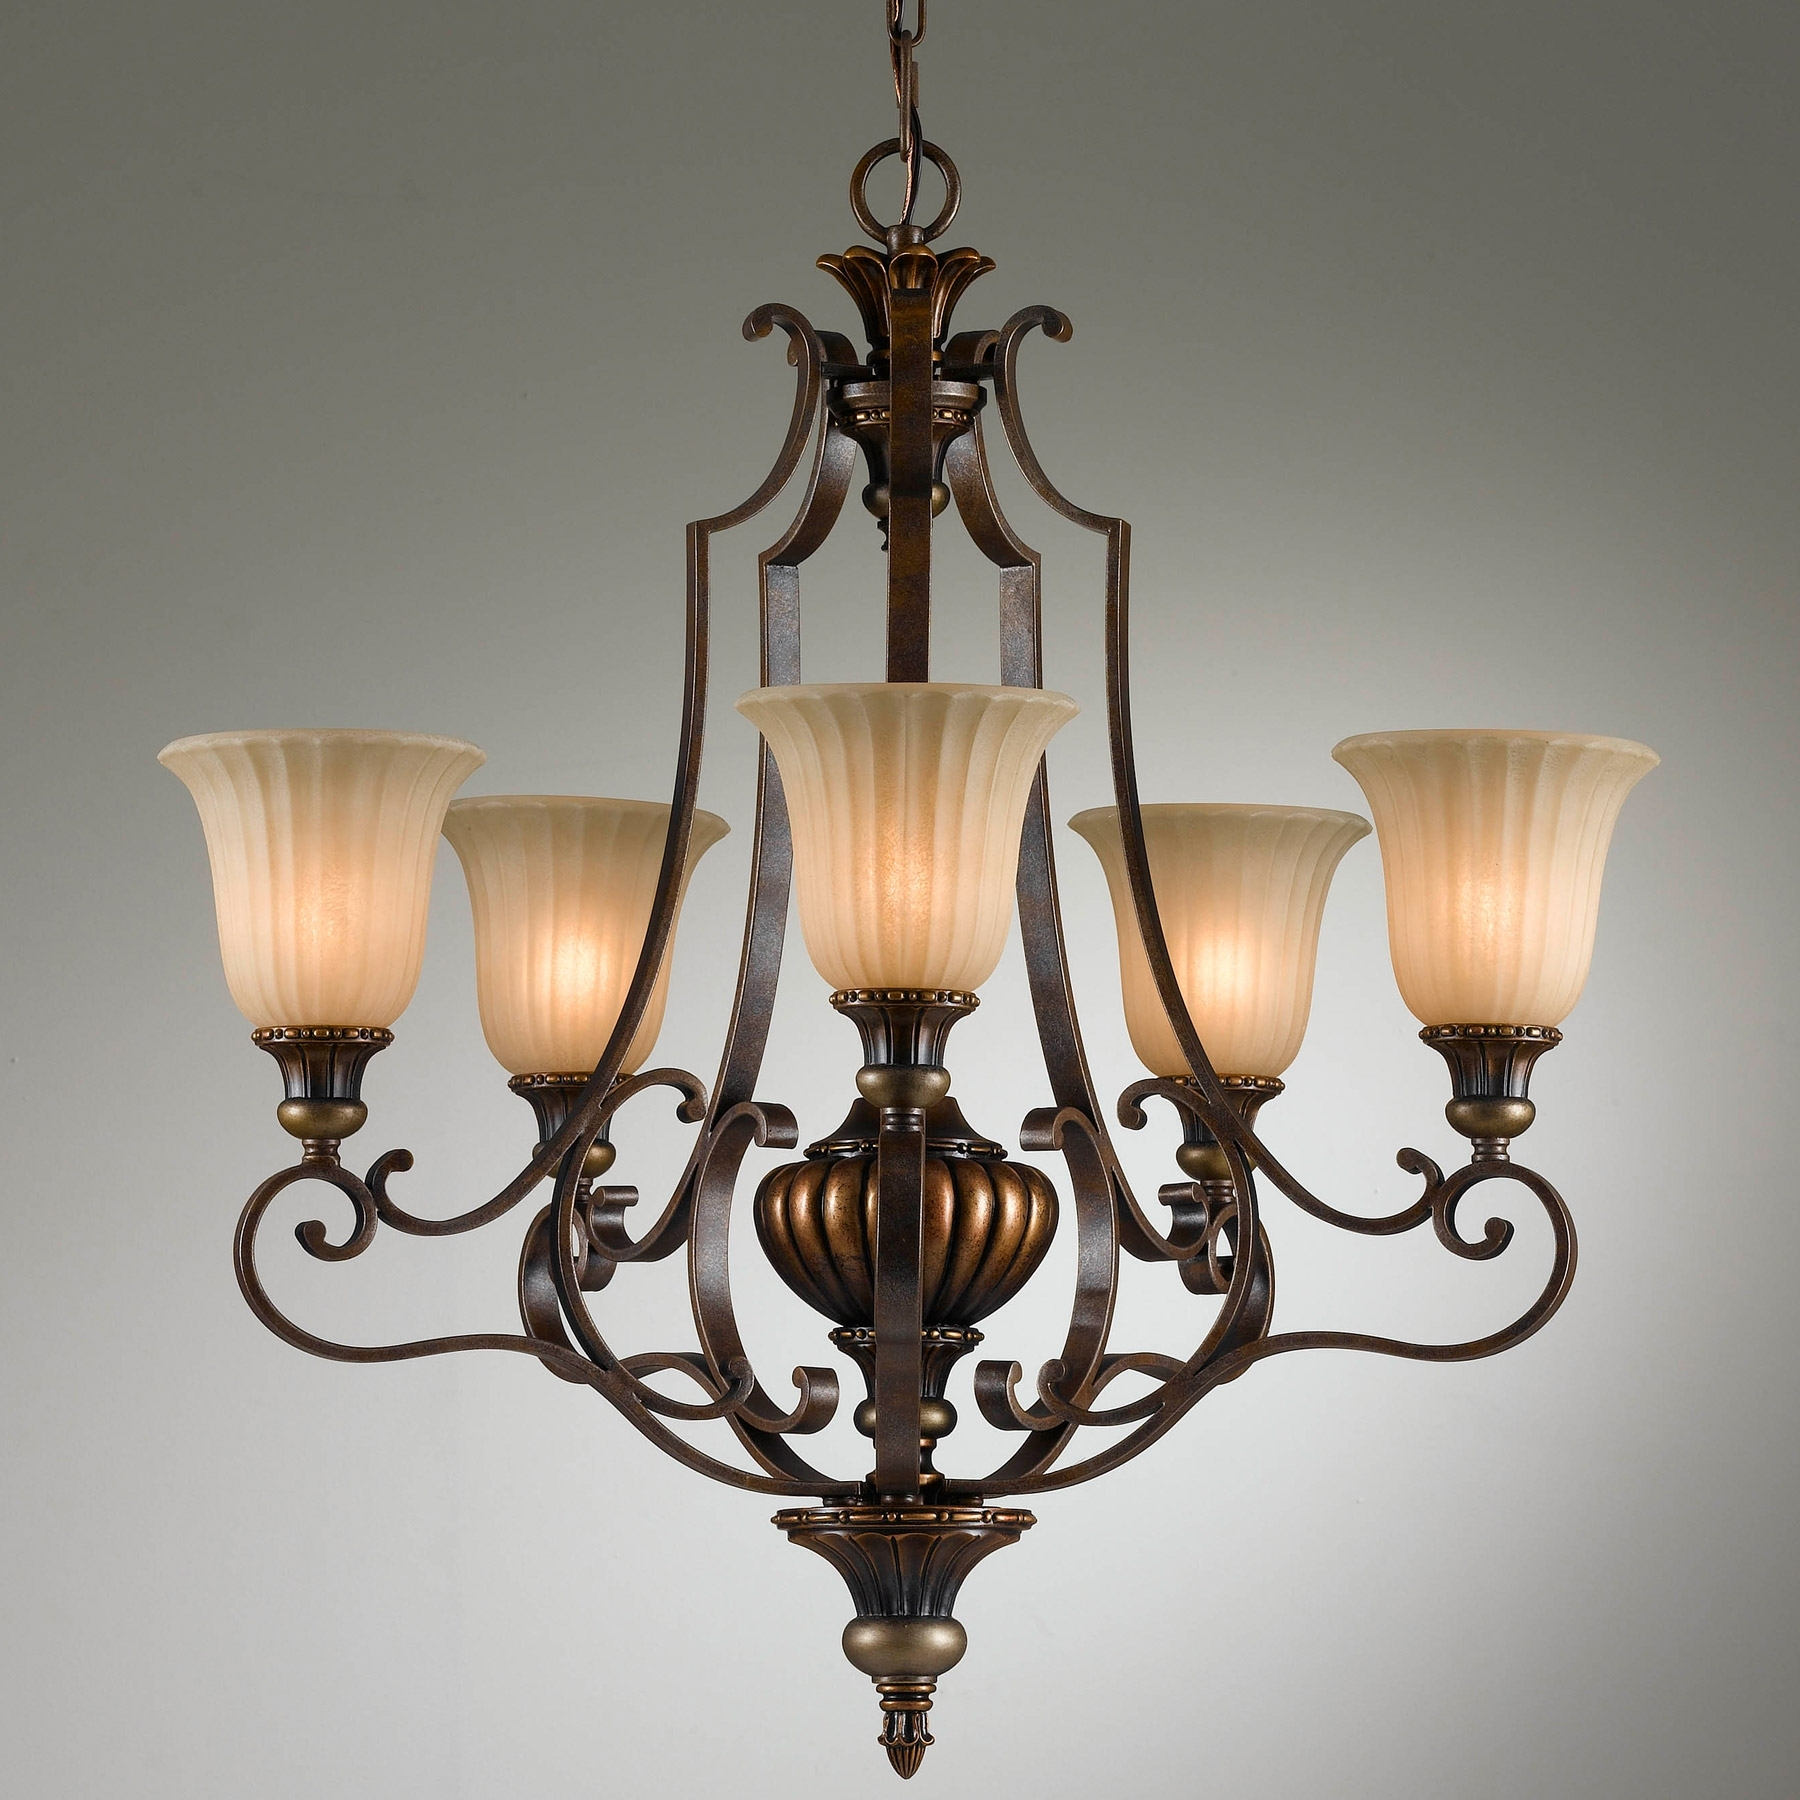 Favorite Chandelier: Outstanding Feiss Chandeliers Decorative Chandelier No Intended For Feiss Chandeliers (View 6 of 15)